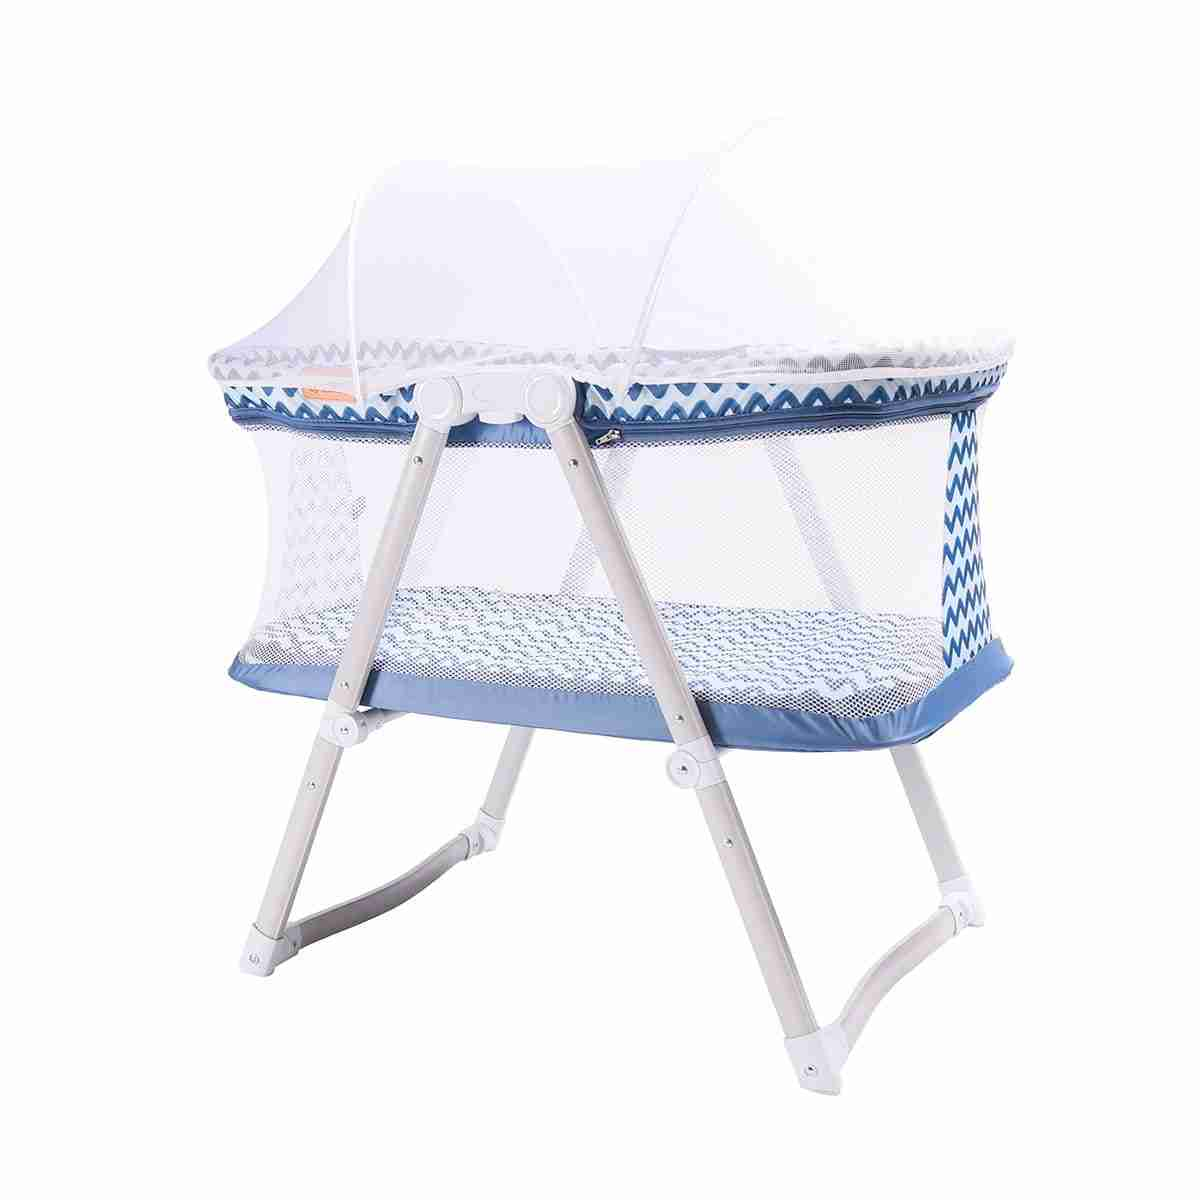 Venture Hush-Lite travel crib in blue with net